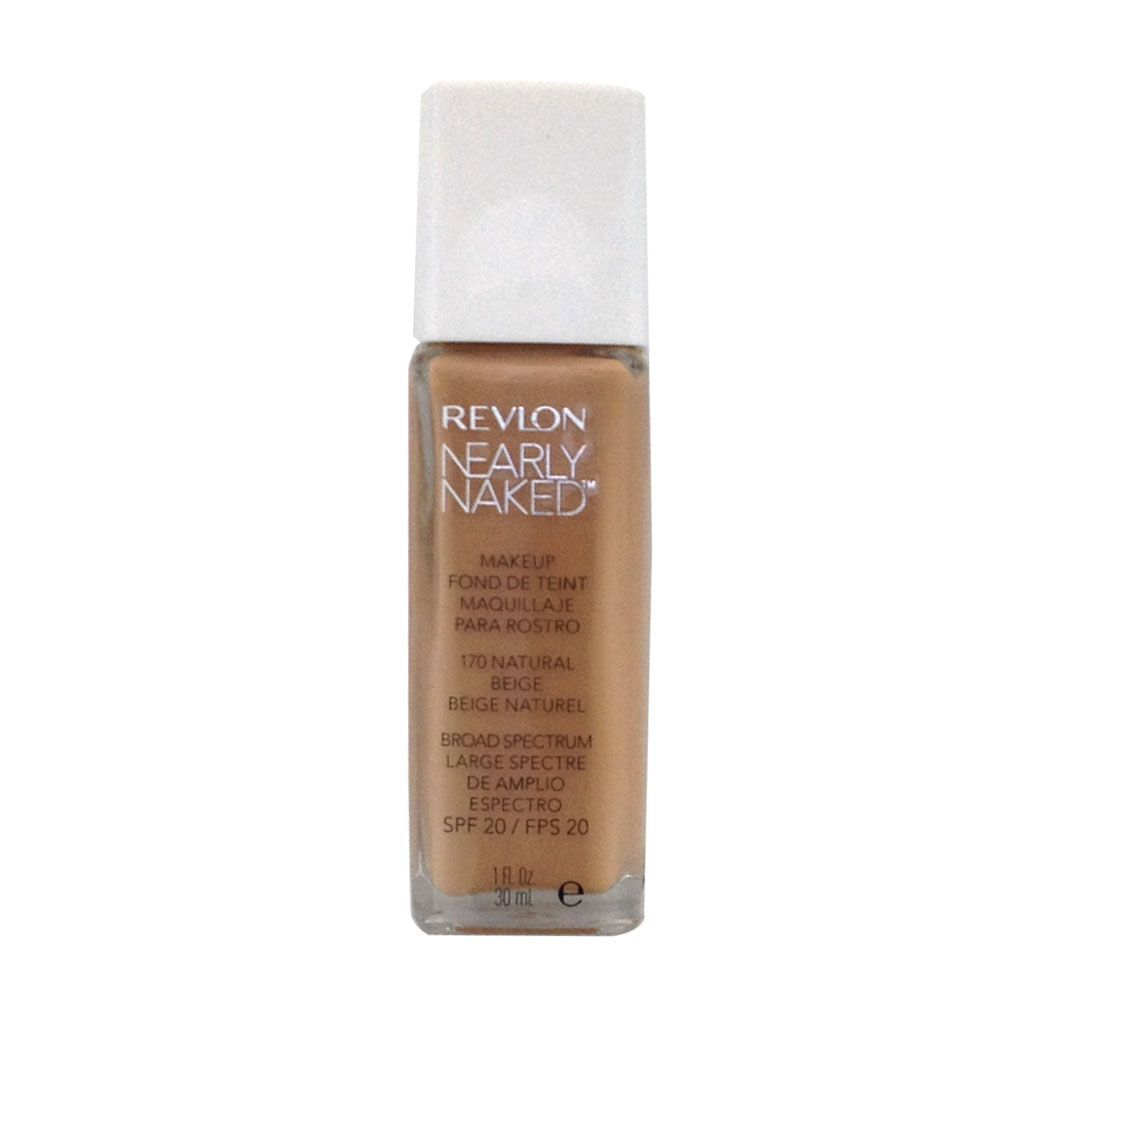 Revlon Nearly Naked Fondotinta 30 ml Natural Beige  SPF20